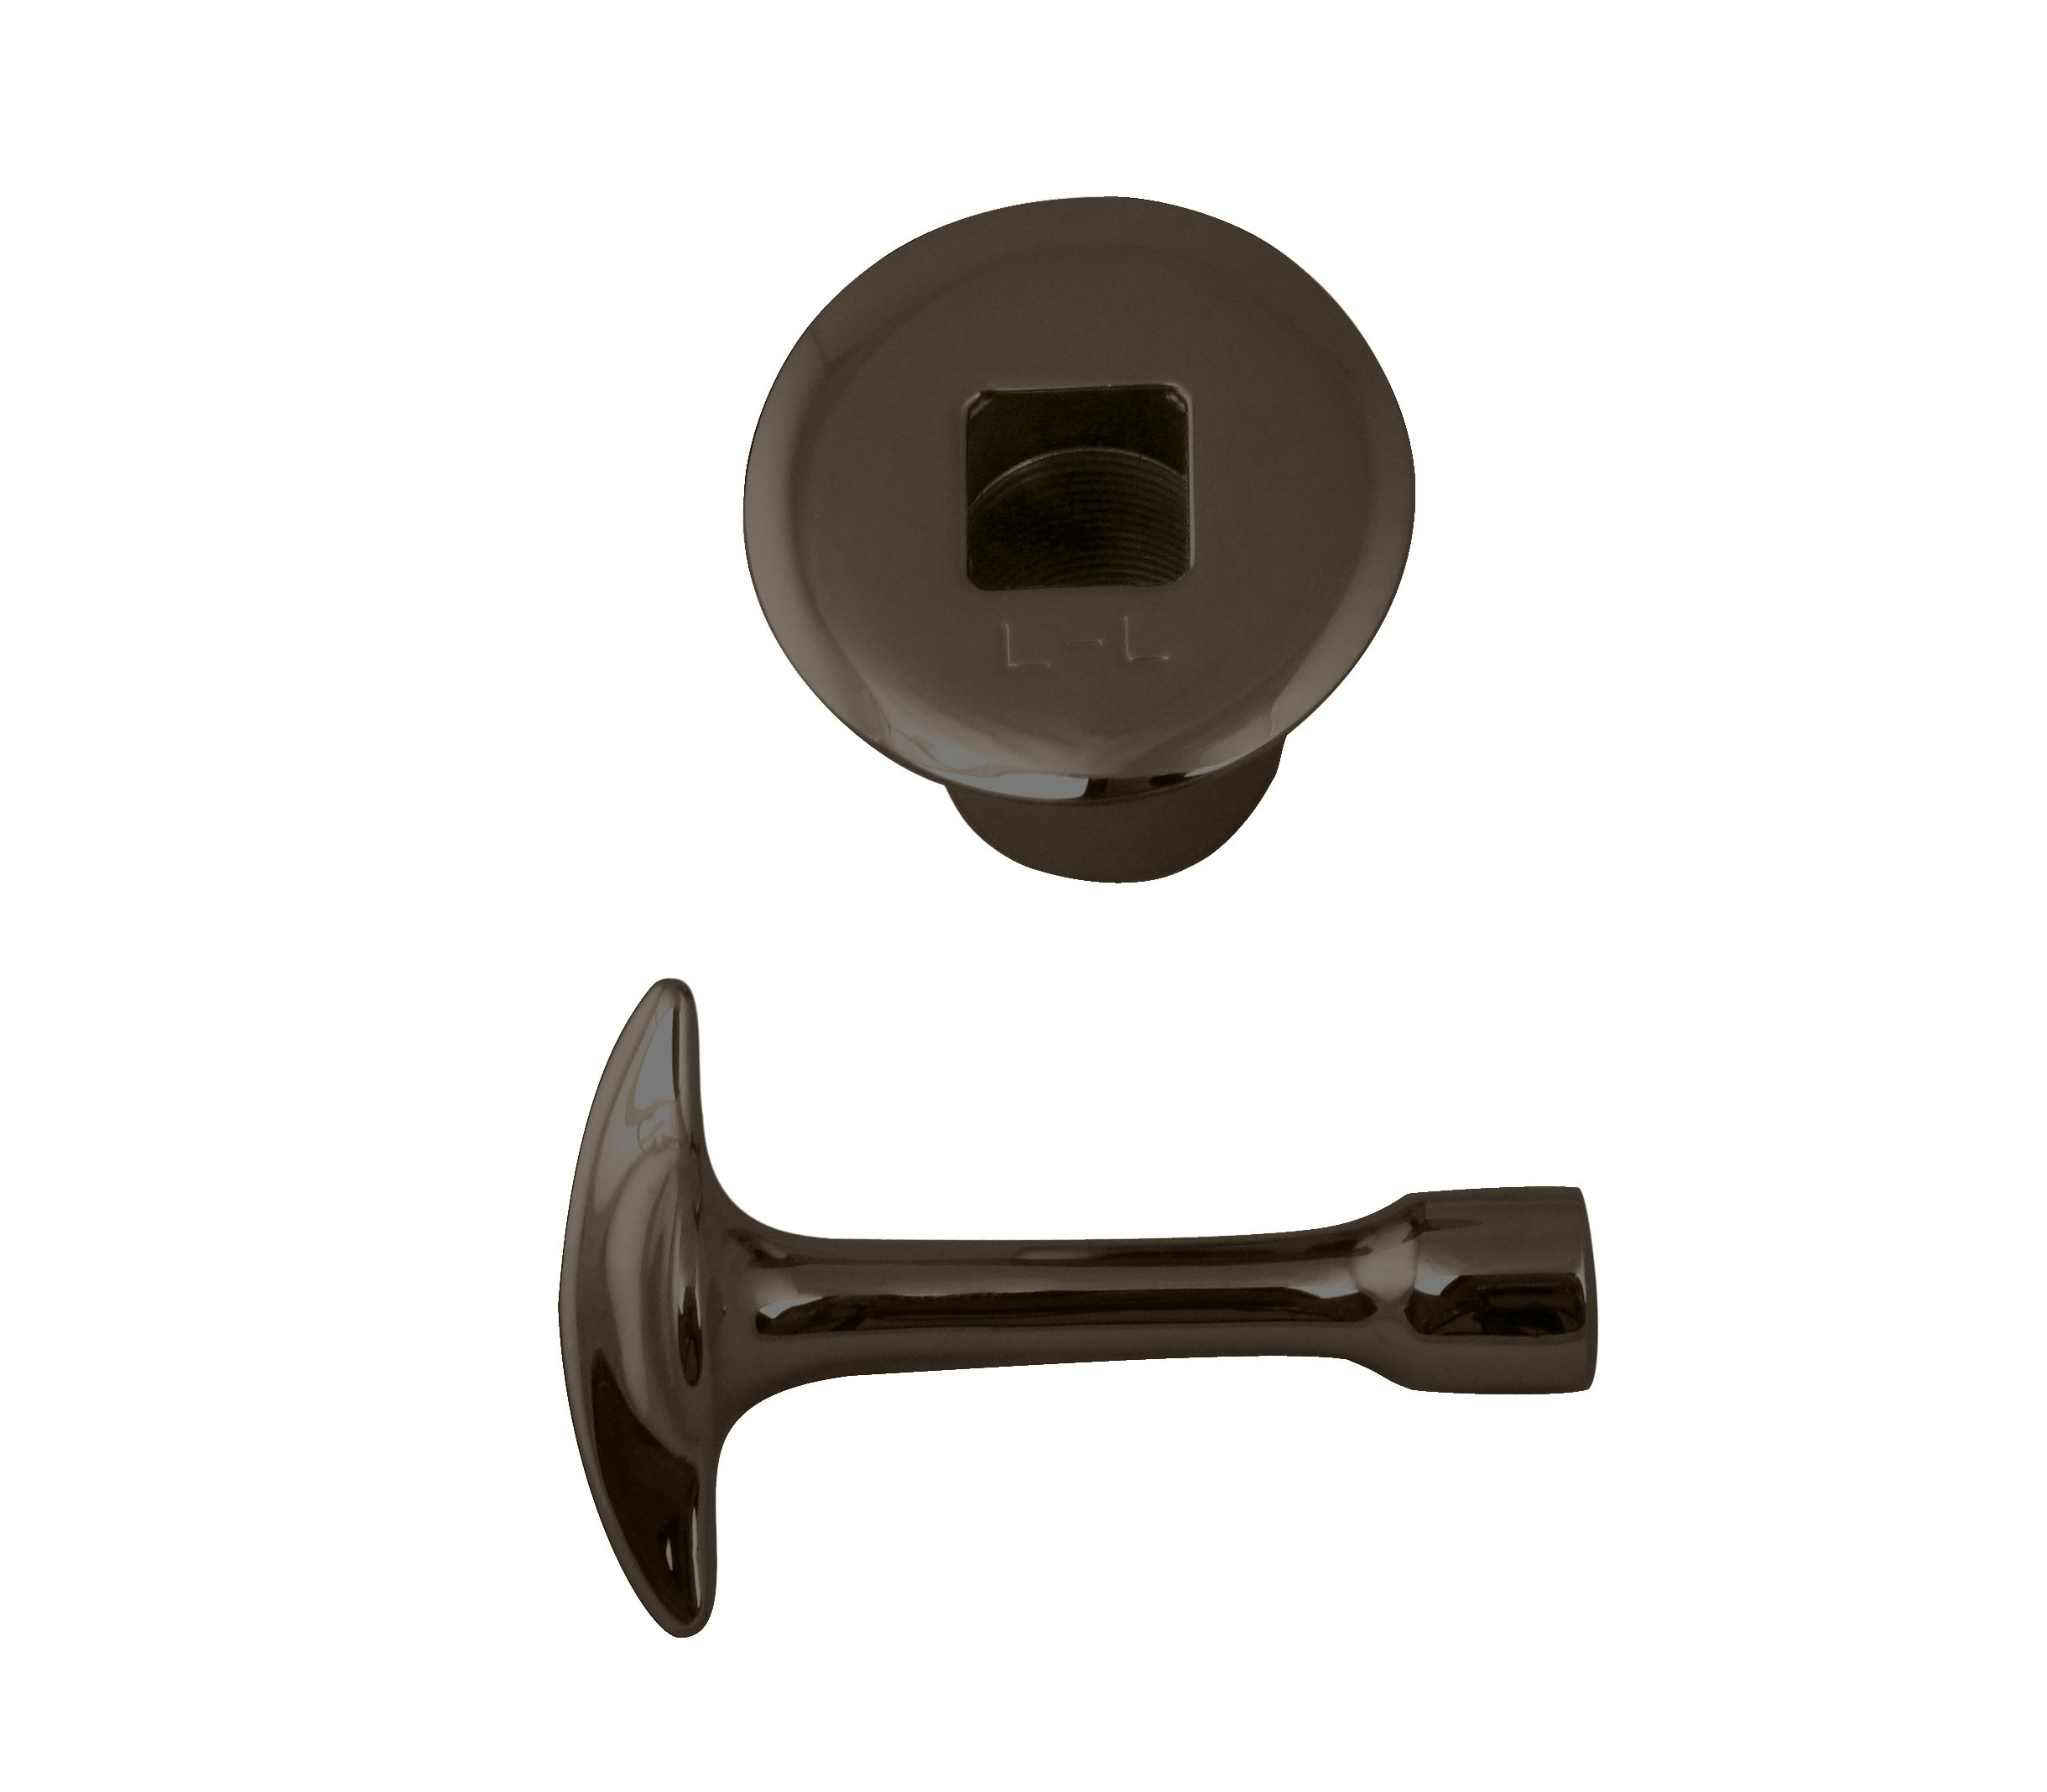 Westbrass Log Lighter Trim Kit for 3/4'' NPSM Valves, Oil Rubbed Bronze, R500-12